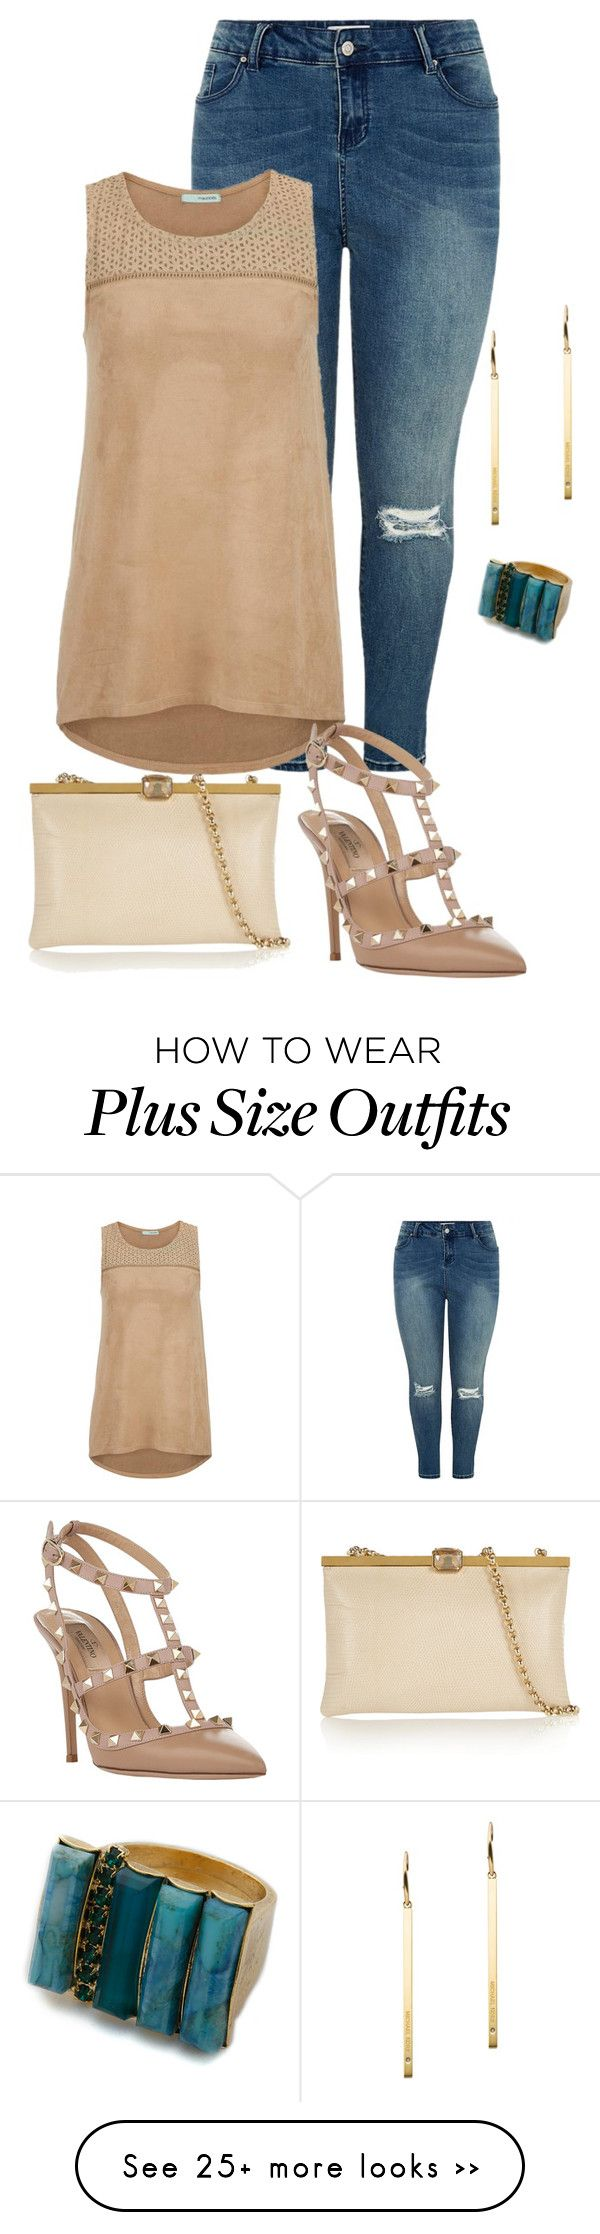 """plus size simple and chic night out"" by kristie-payne on Polyvore featuring maurices, Dolce&Gabbana, Michael Kors, Valentino and Elizabeth Cole"